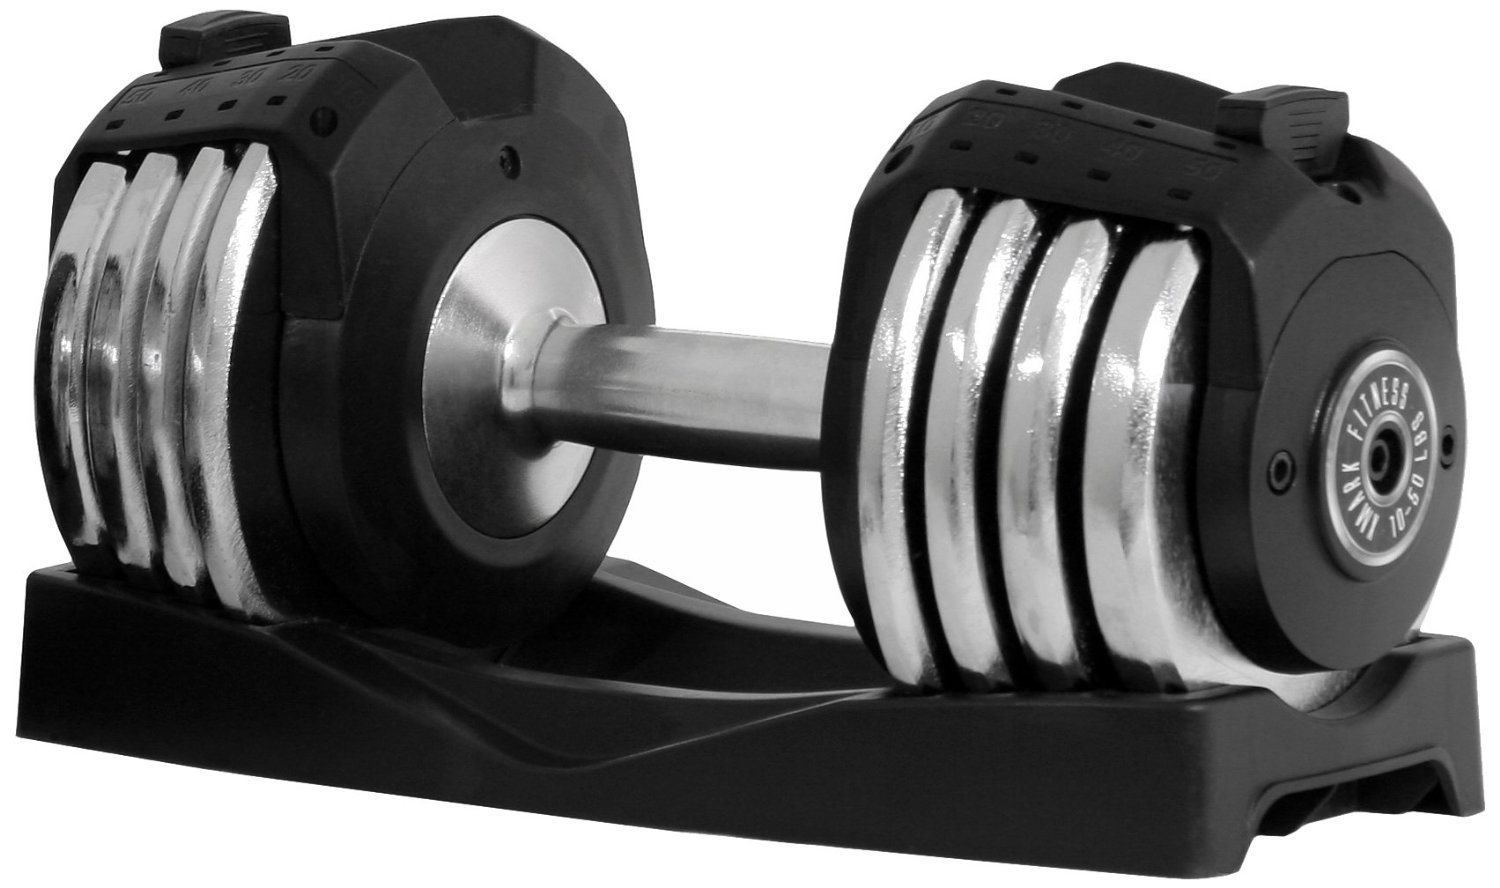 Xmark-adjustable-dumbbells[2]